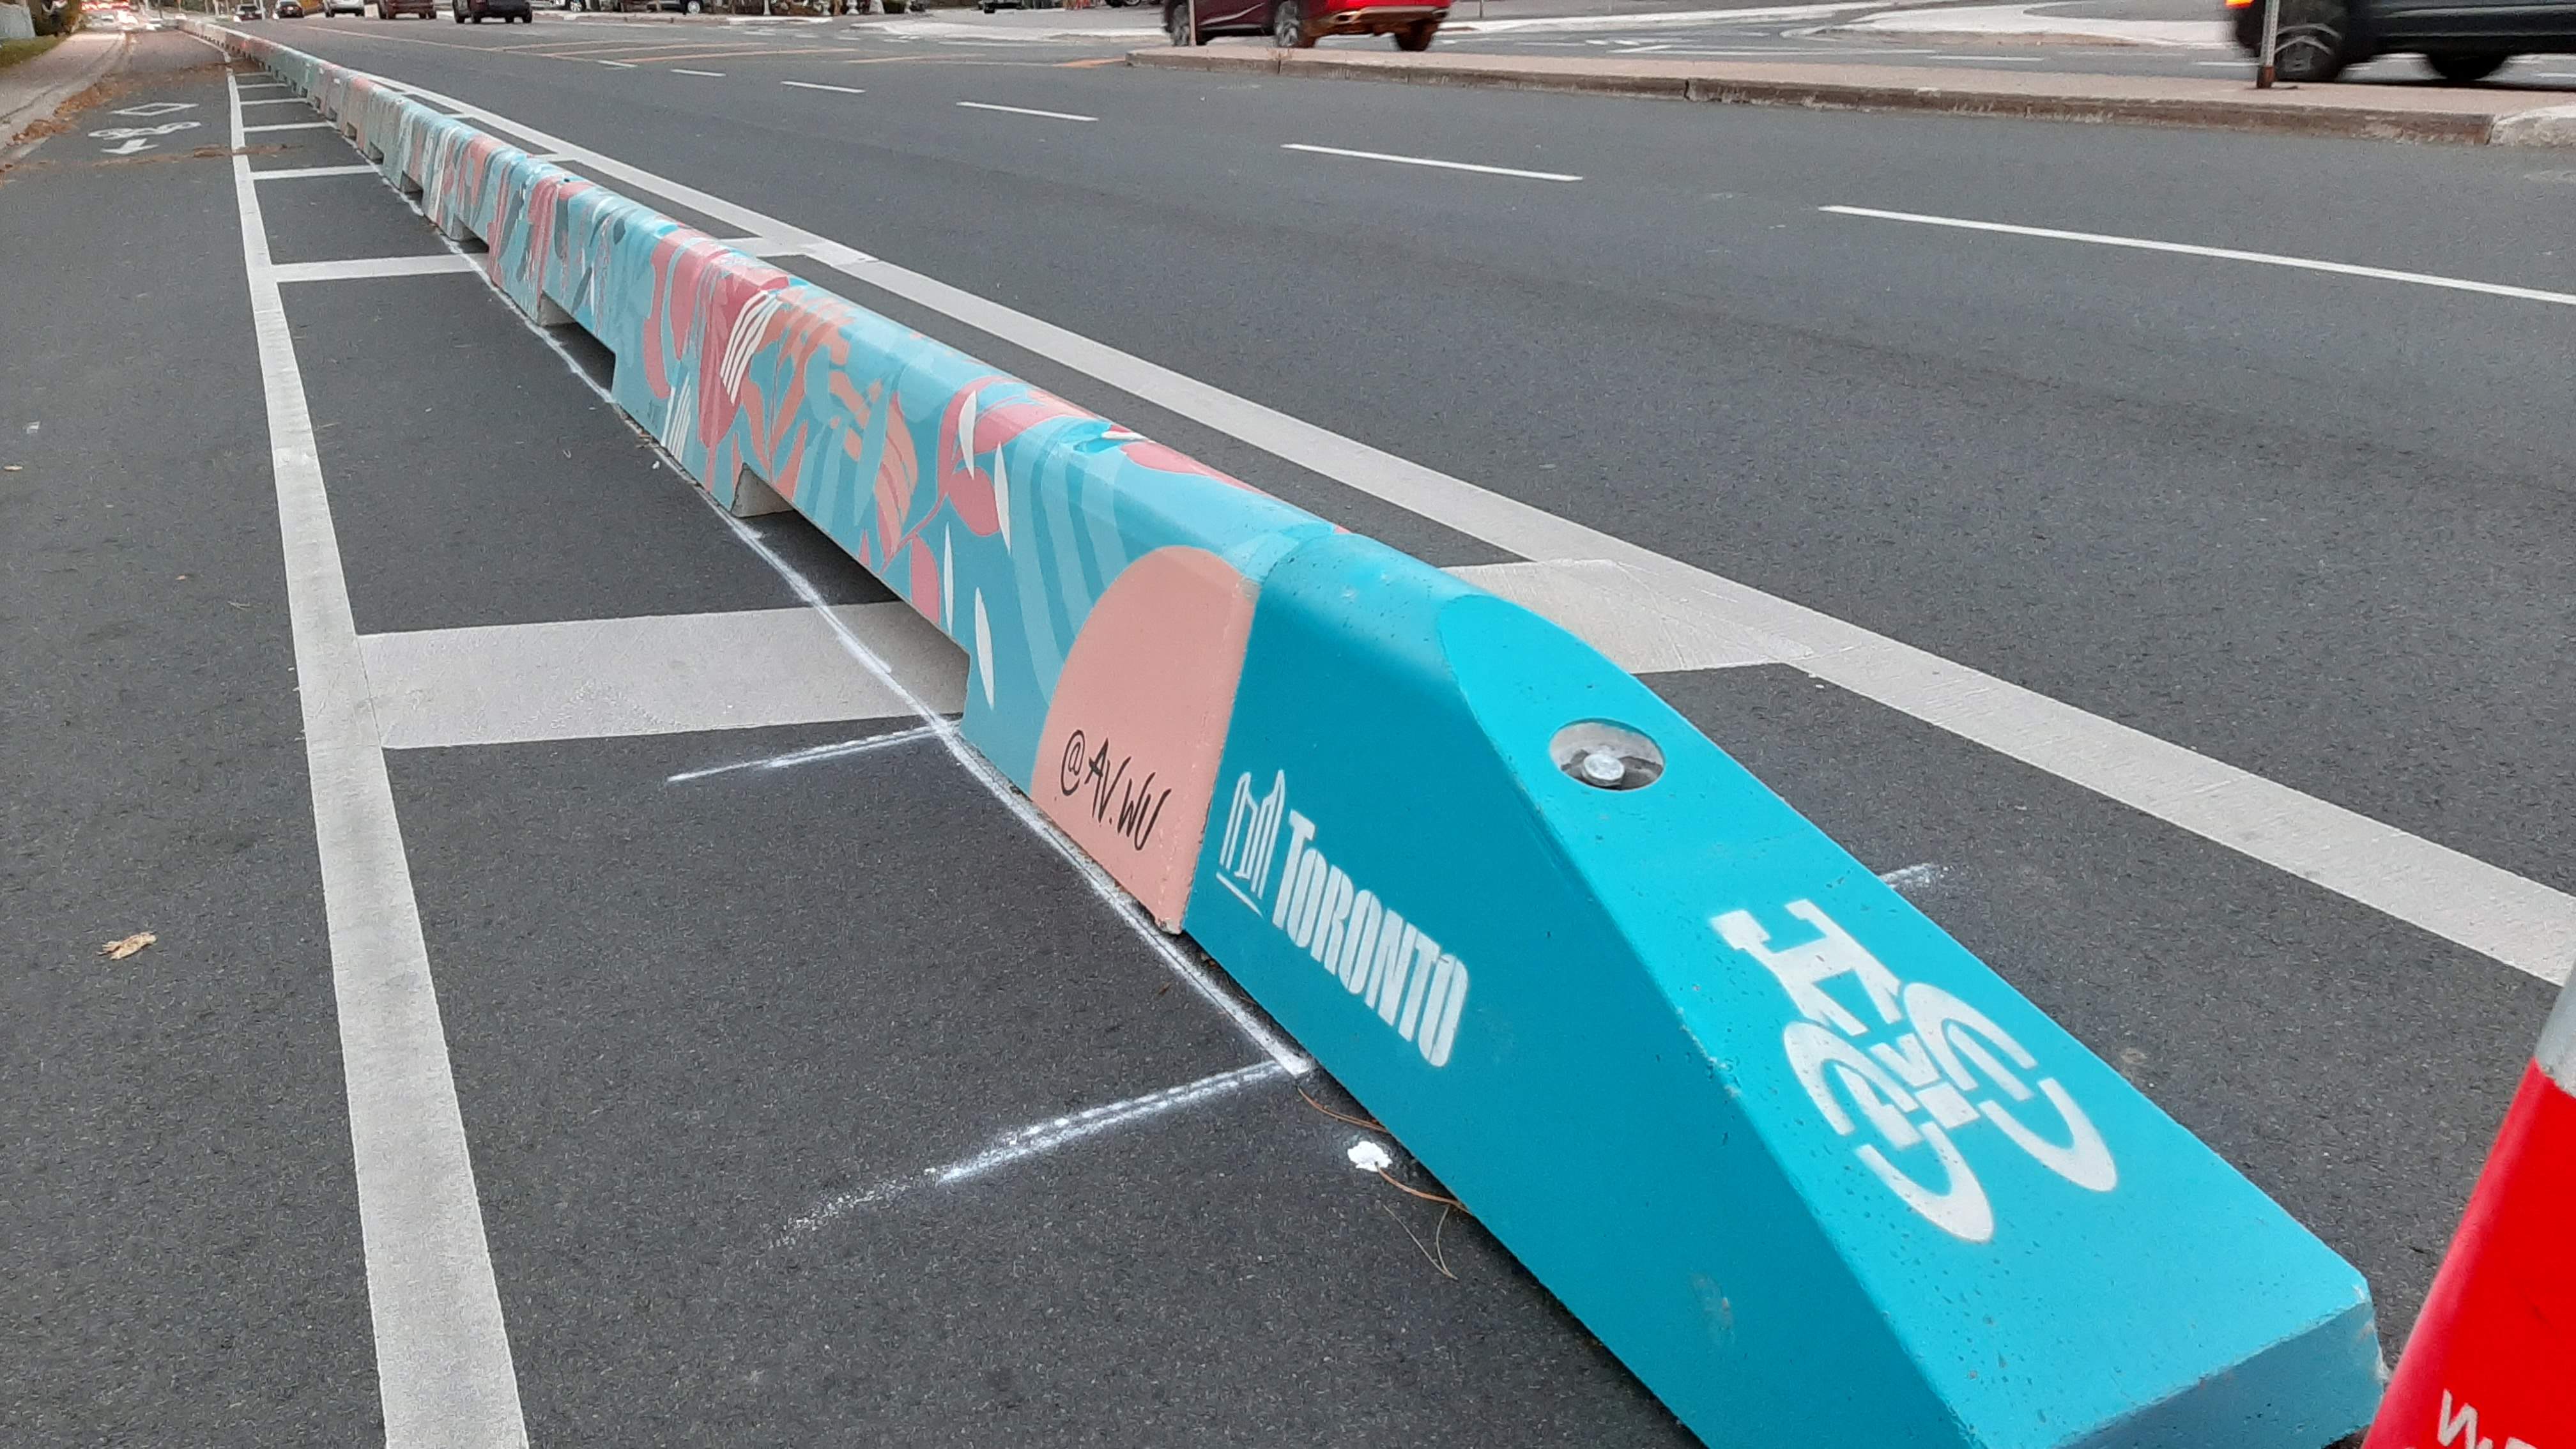 Painted in pinks, teals, and white, a low concrete wall separates a bike lane from traffic.